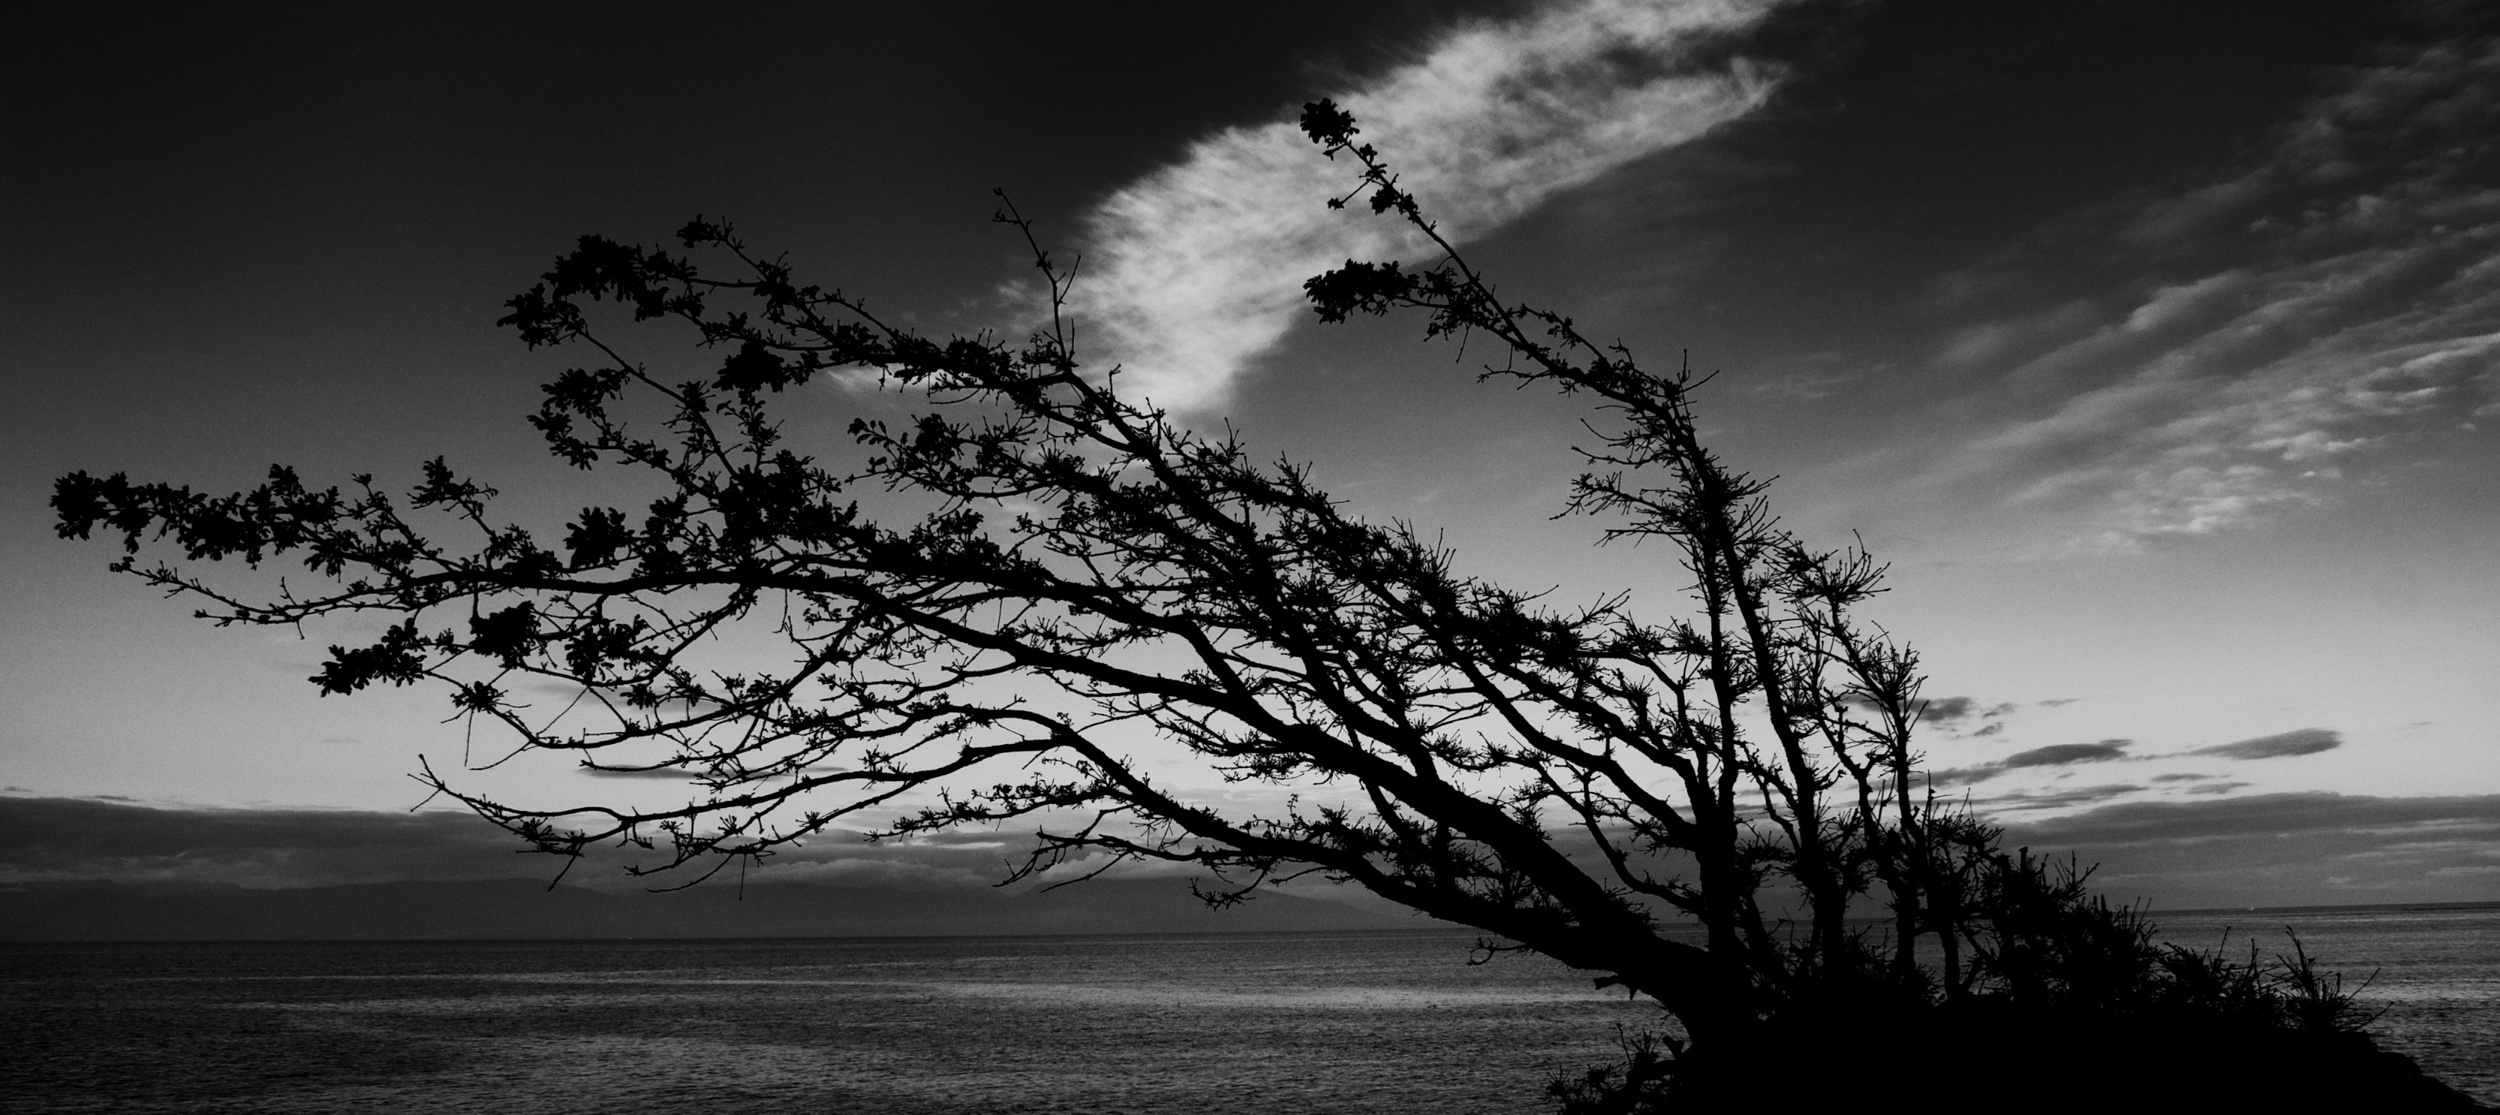 2010-05-22 at 20-20-51 Bent, Black & White, Landscape, Seascape Trees, Trees, Windblown.jpg